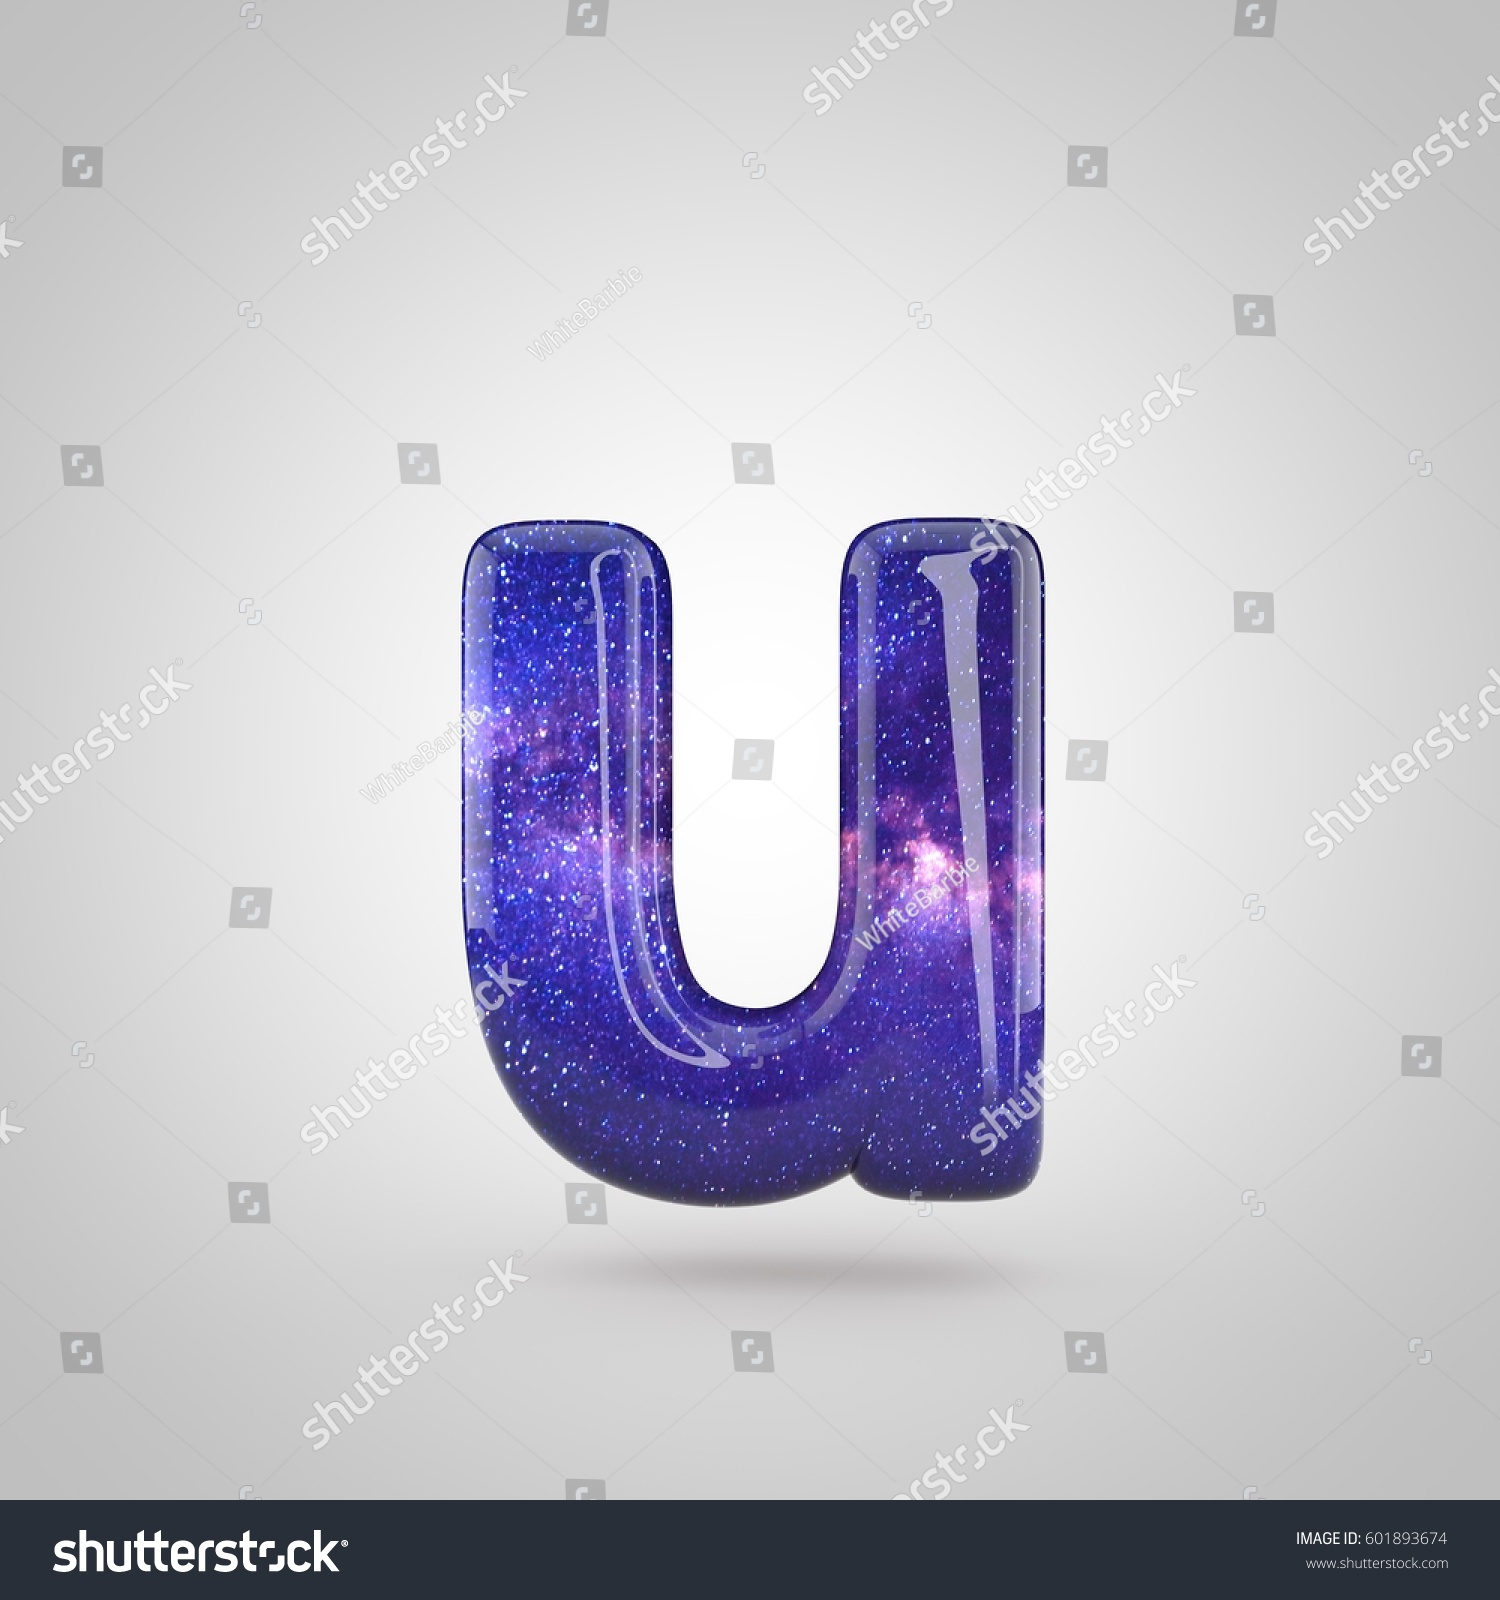 Cosmic Letter U Lowercase 3 D Render Stock Illustration 601893674